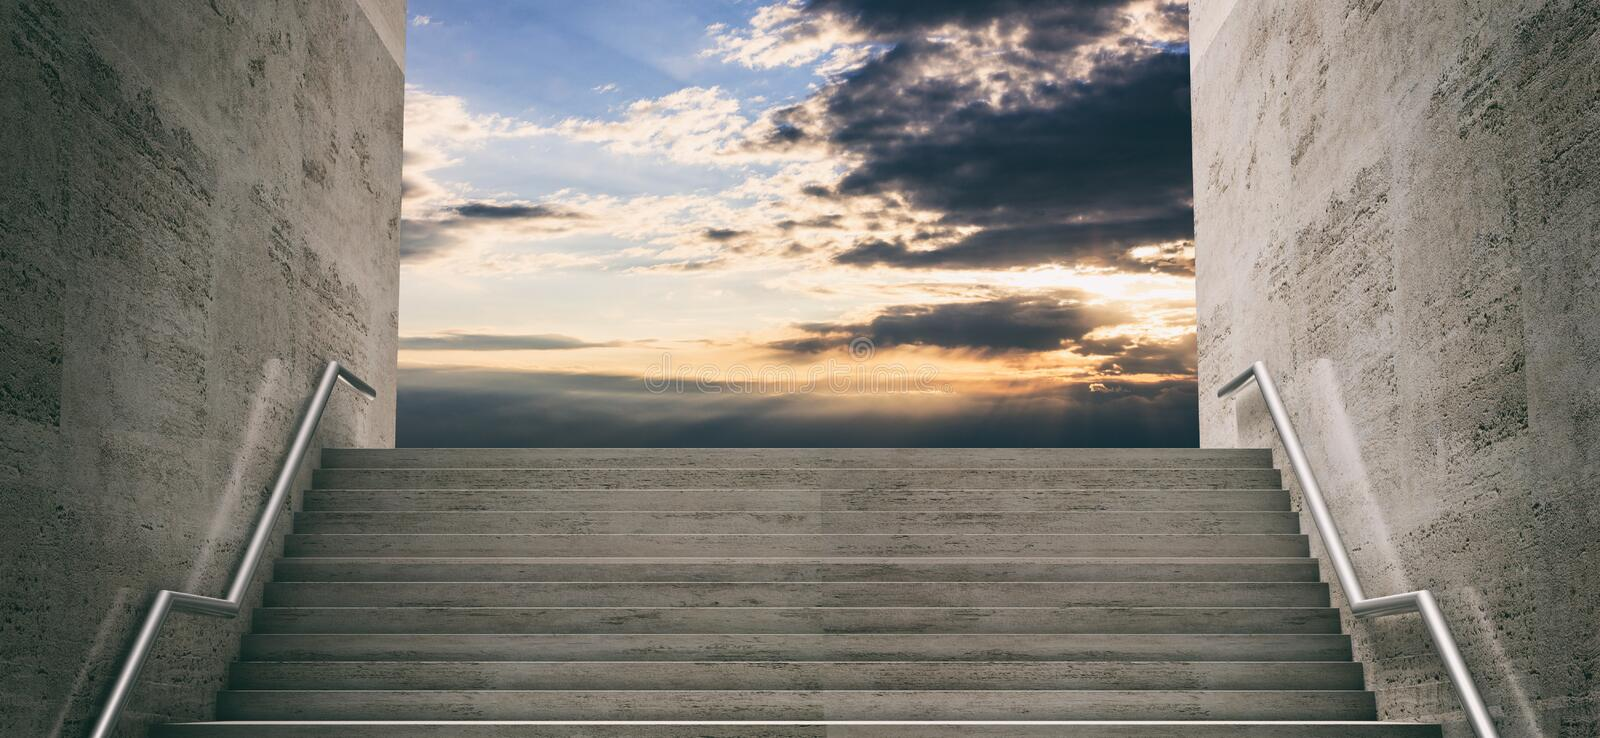 Marble stairs, sky at sunrise background. 3d illustration vector illustration